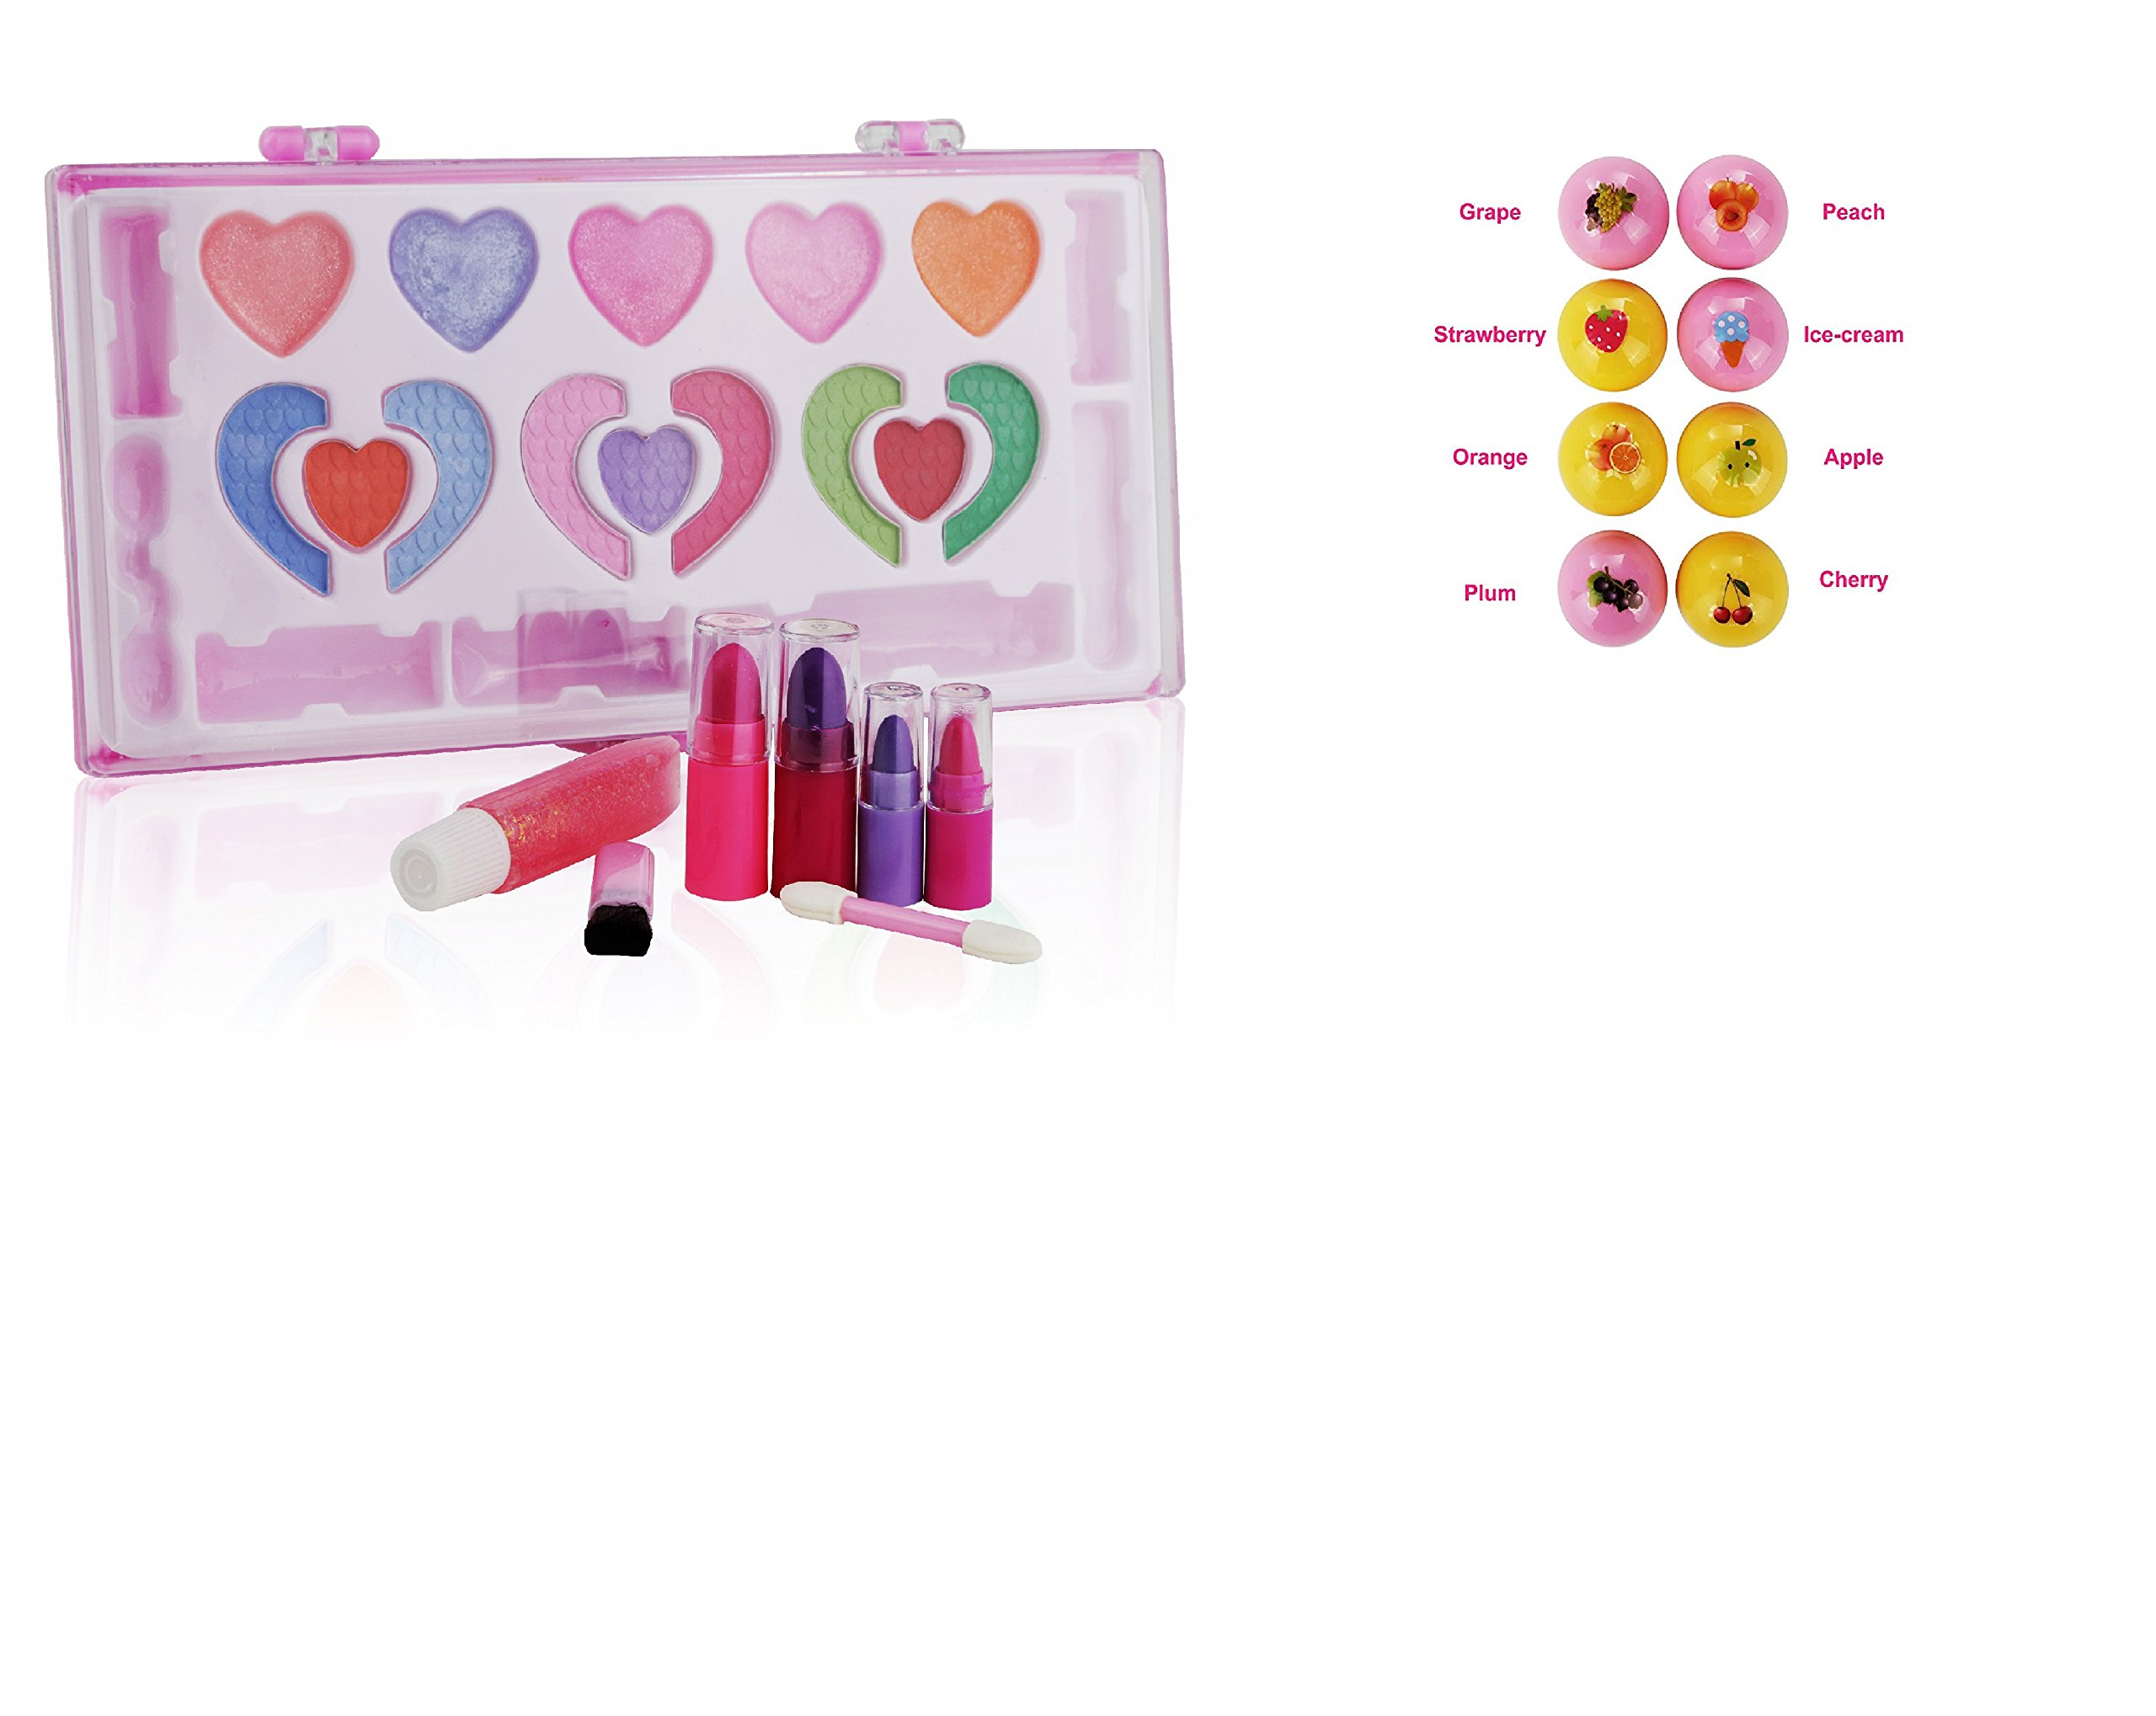 Pinkleaf Kids Makeup Kit for Girls - Toddler Toys - Safe & Non-Toxic Cosmetic Washable Makeup Set with Flavored Lip Balm, Gift Set, for Kids, Girls, Toddlers, Perfect for Any Occasion